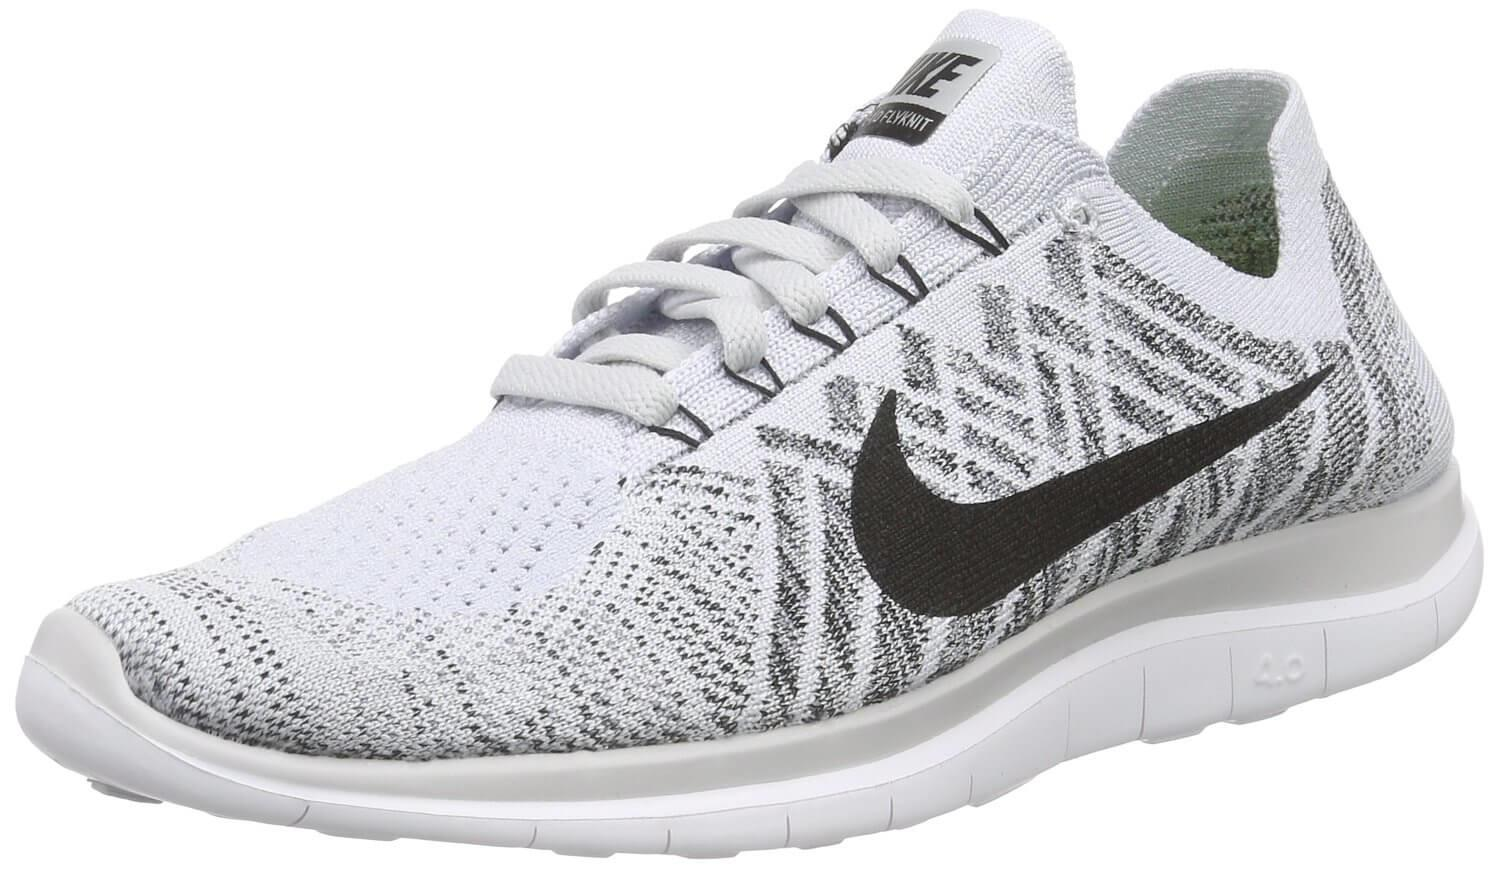 f91b0b3a0e1 Nike Free Flyknit 4.0 Review - Buy or Not in Mar 2019